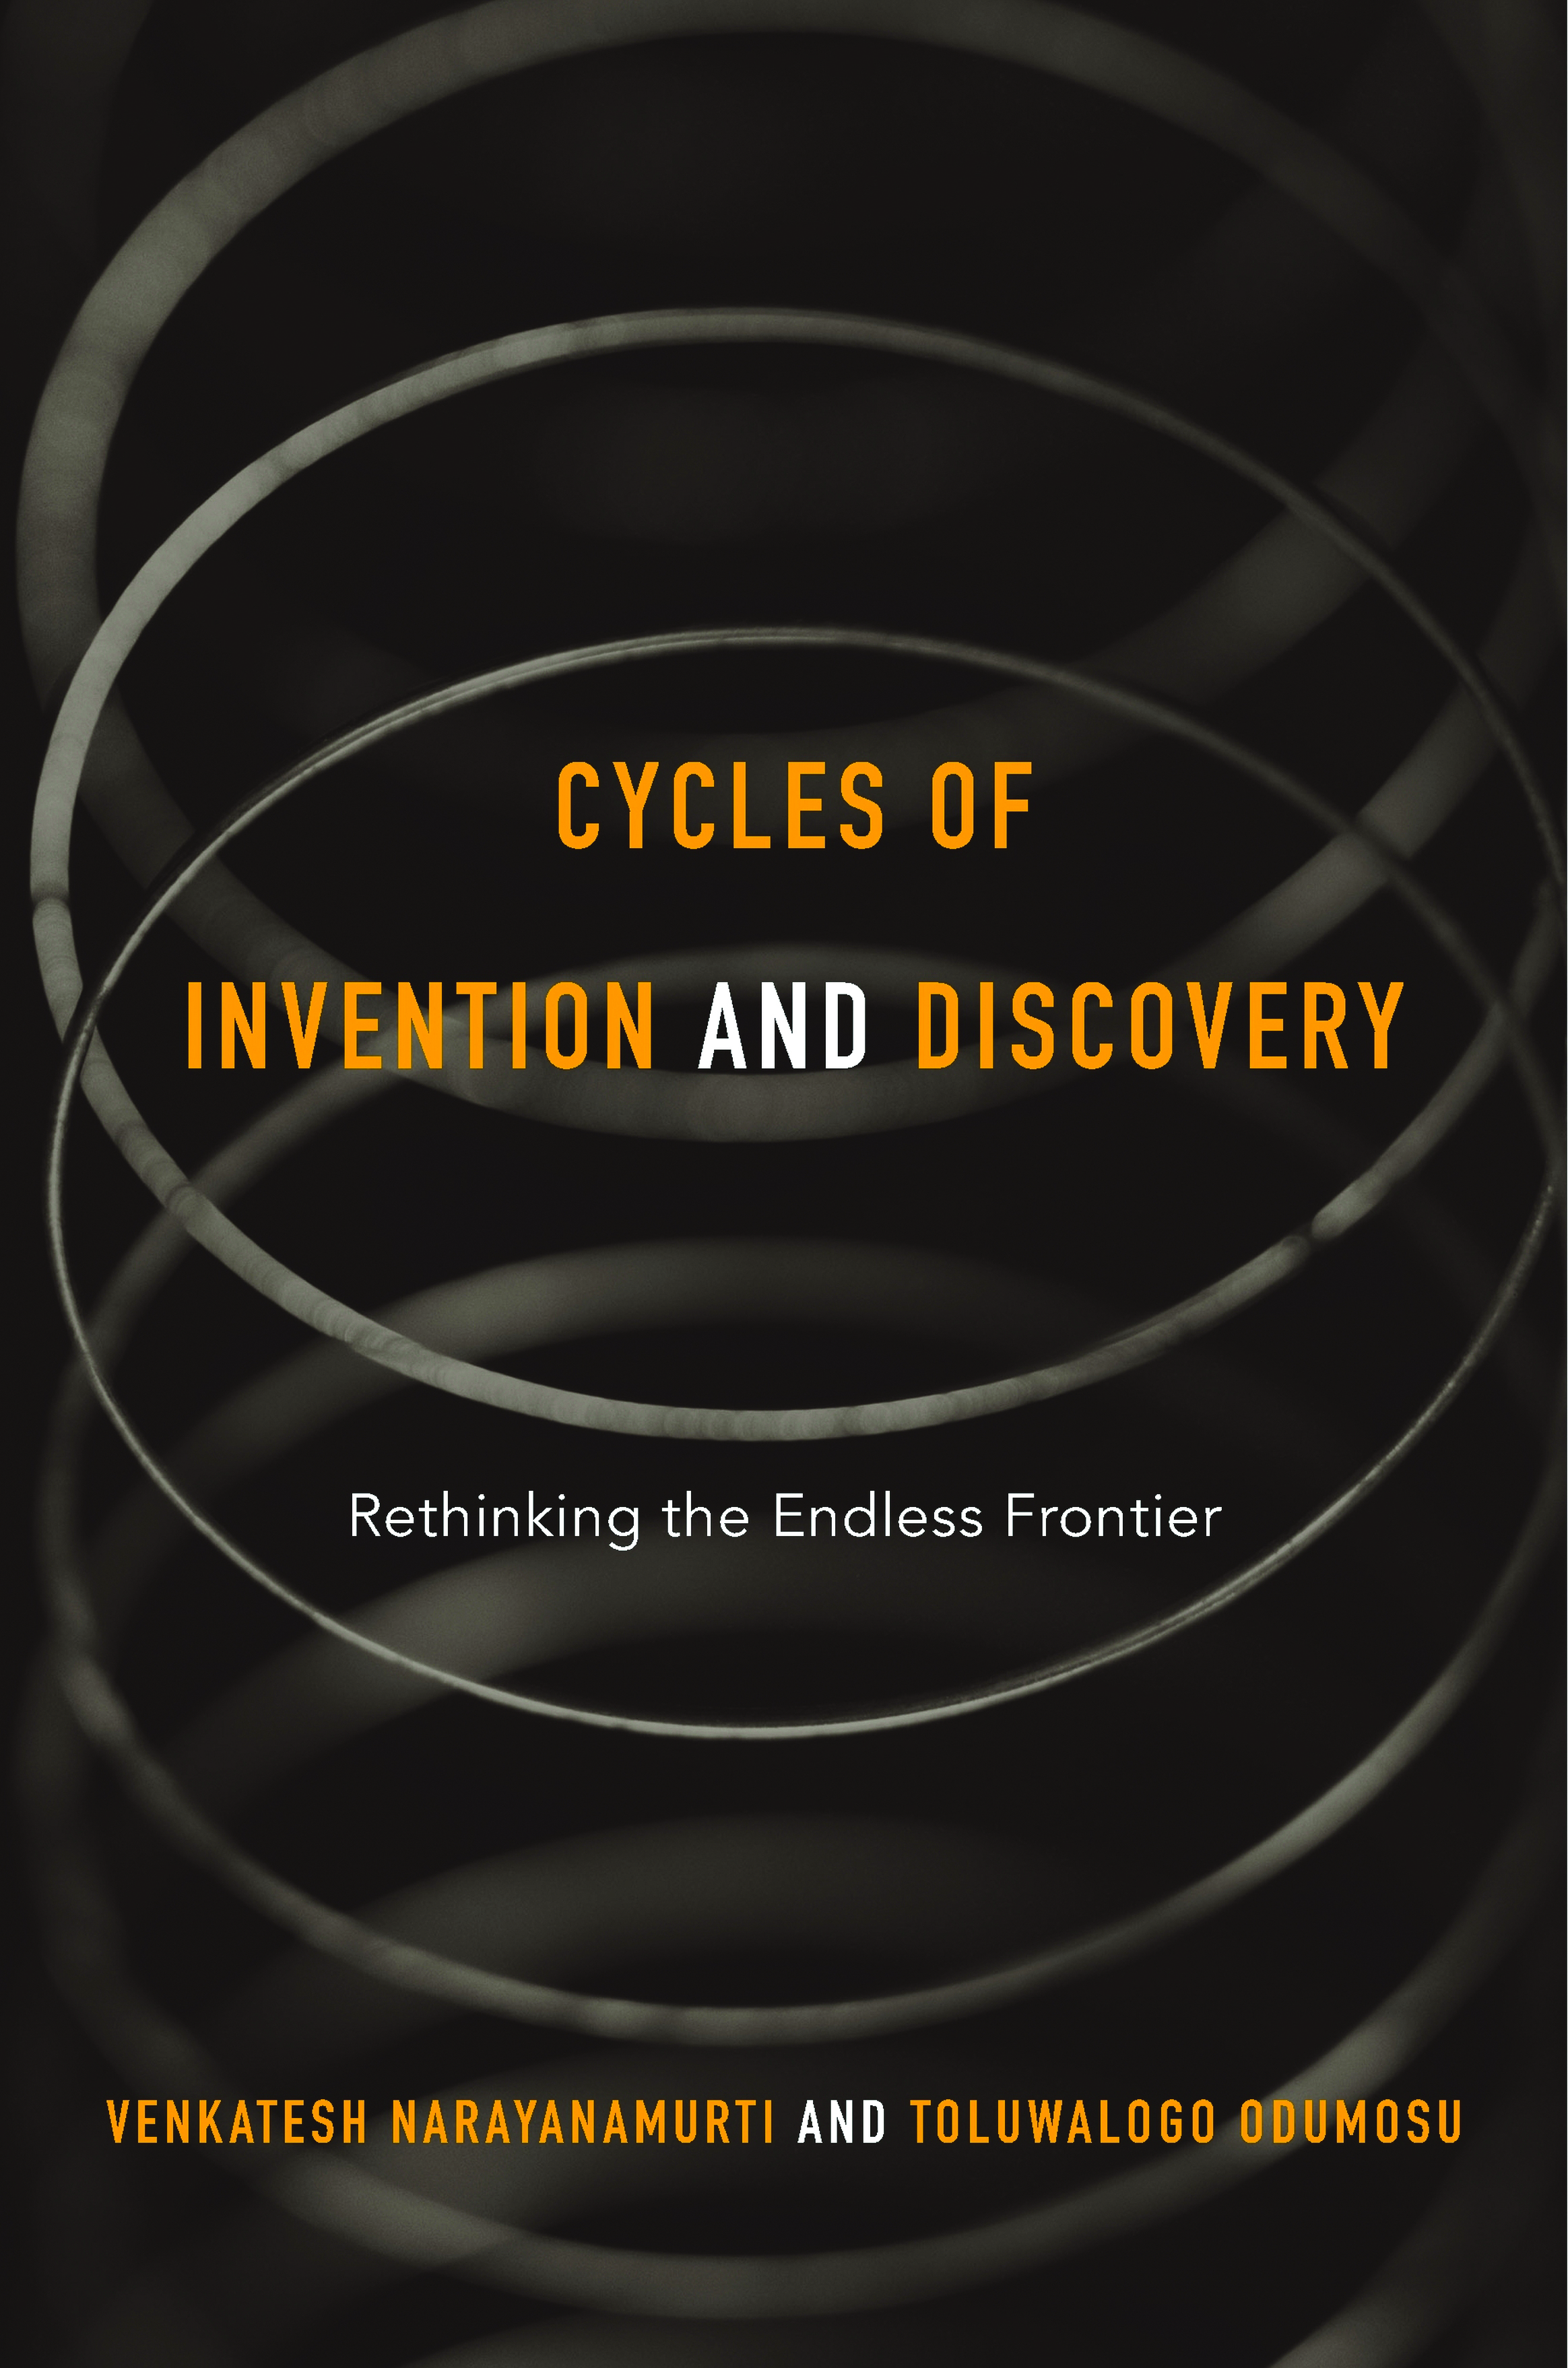 Cycles of Invention and Discovery book cover